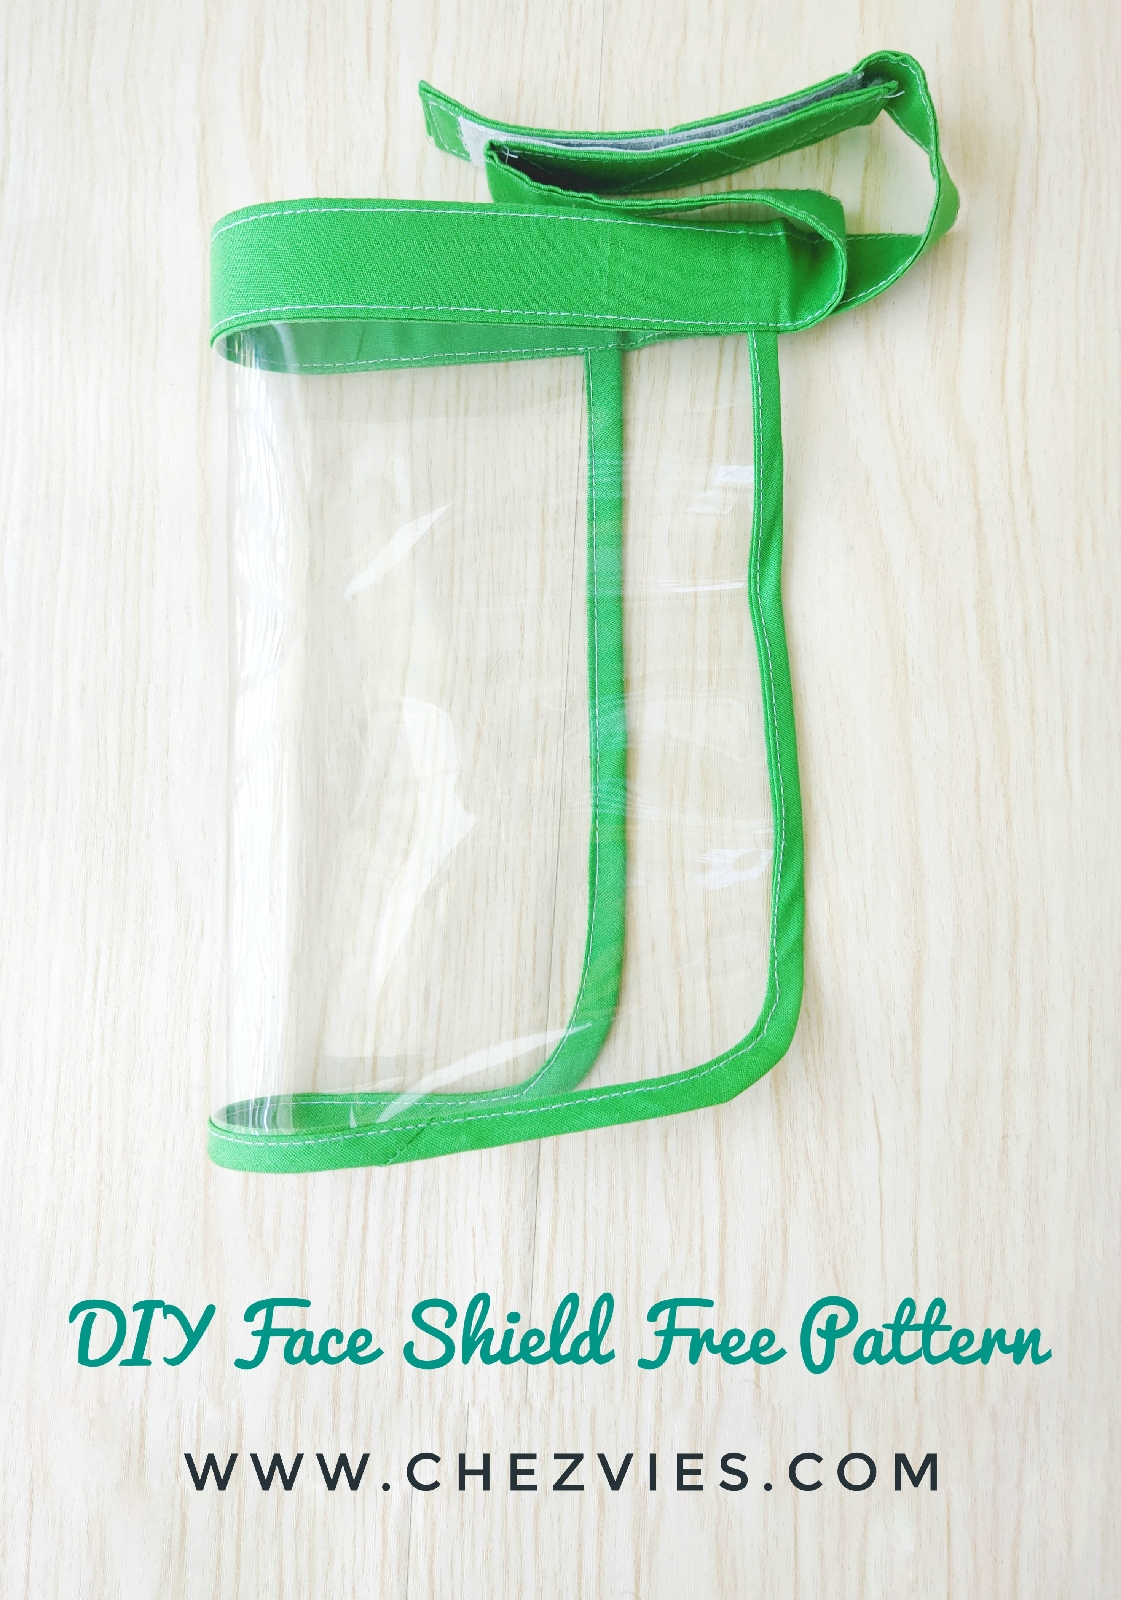 How To Make Face Shield Or Face Guard Free Pdf Pattern